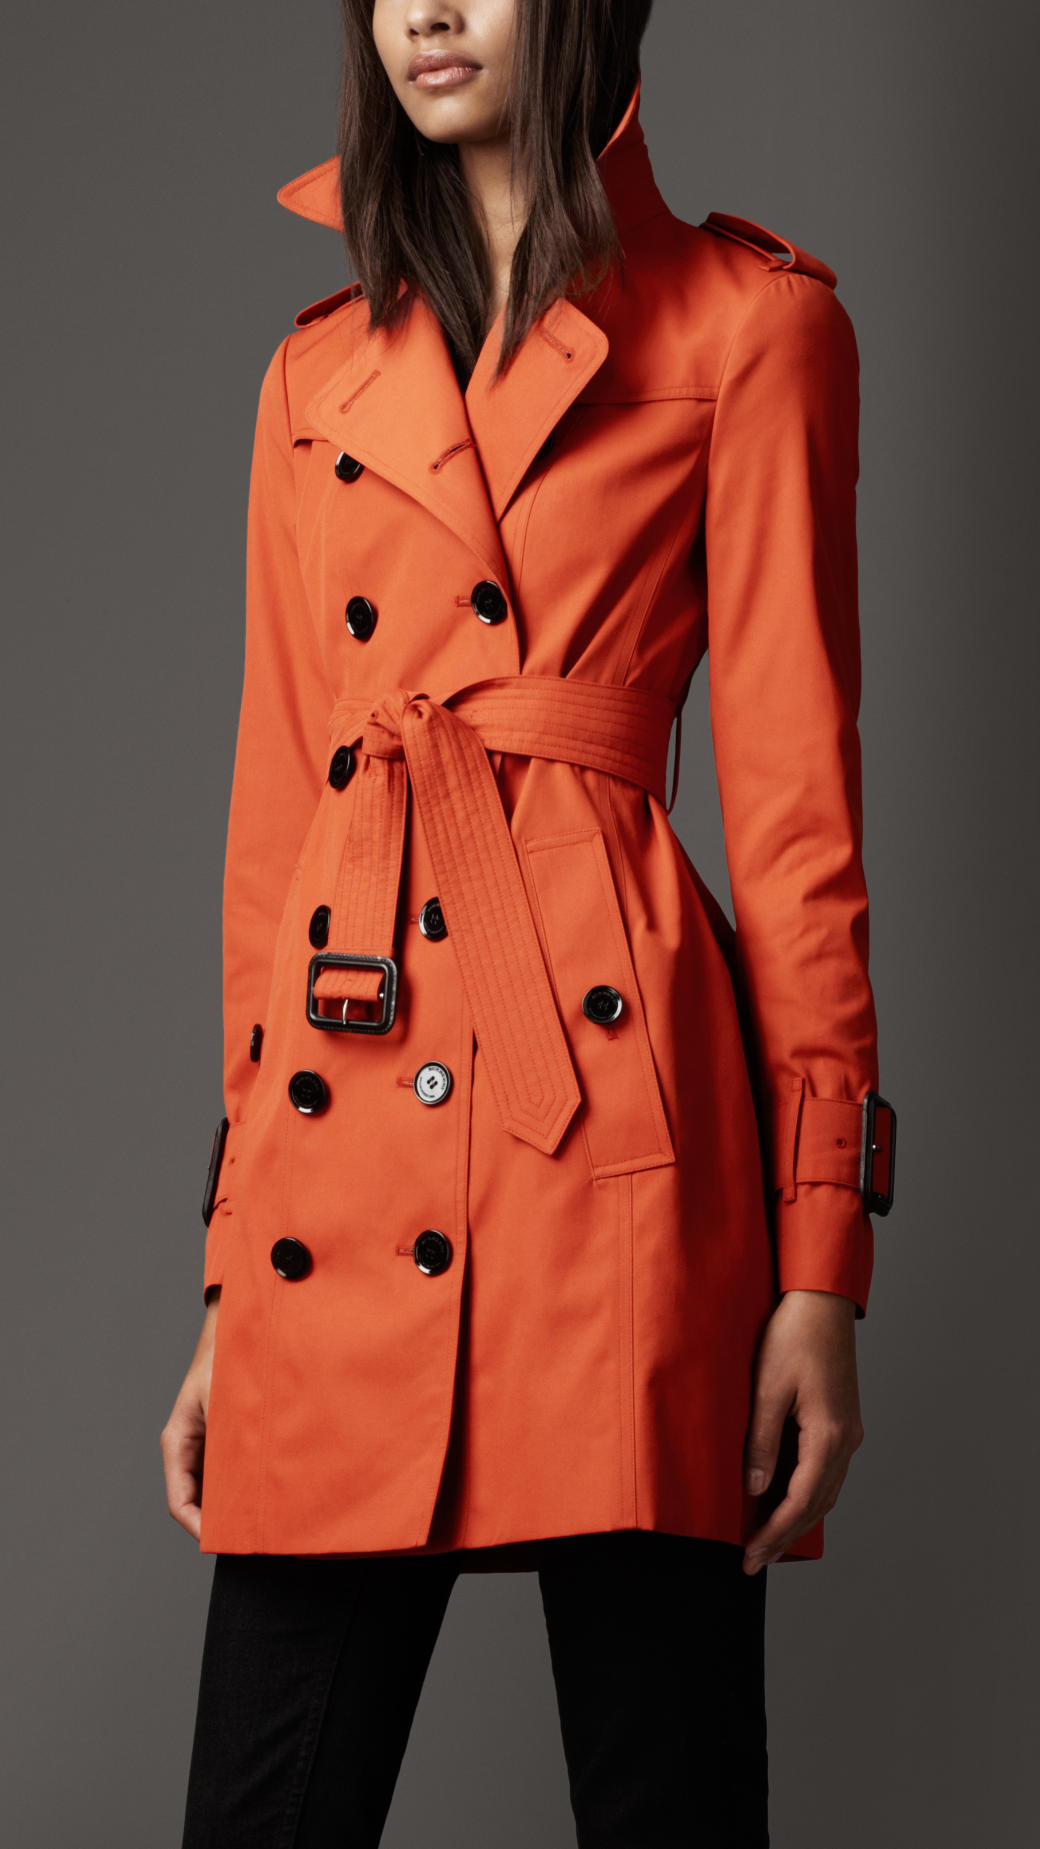 Burberry midlength cotton blend trench coat in orange lyst for Burberry damen mantel